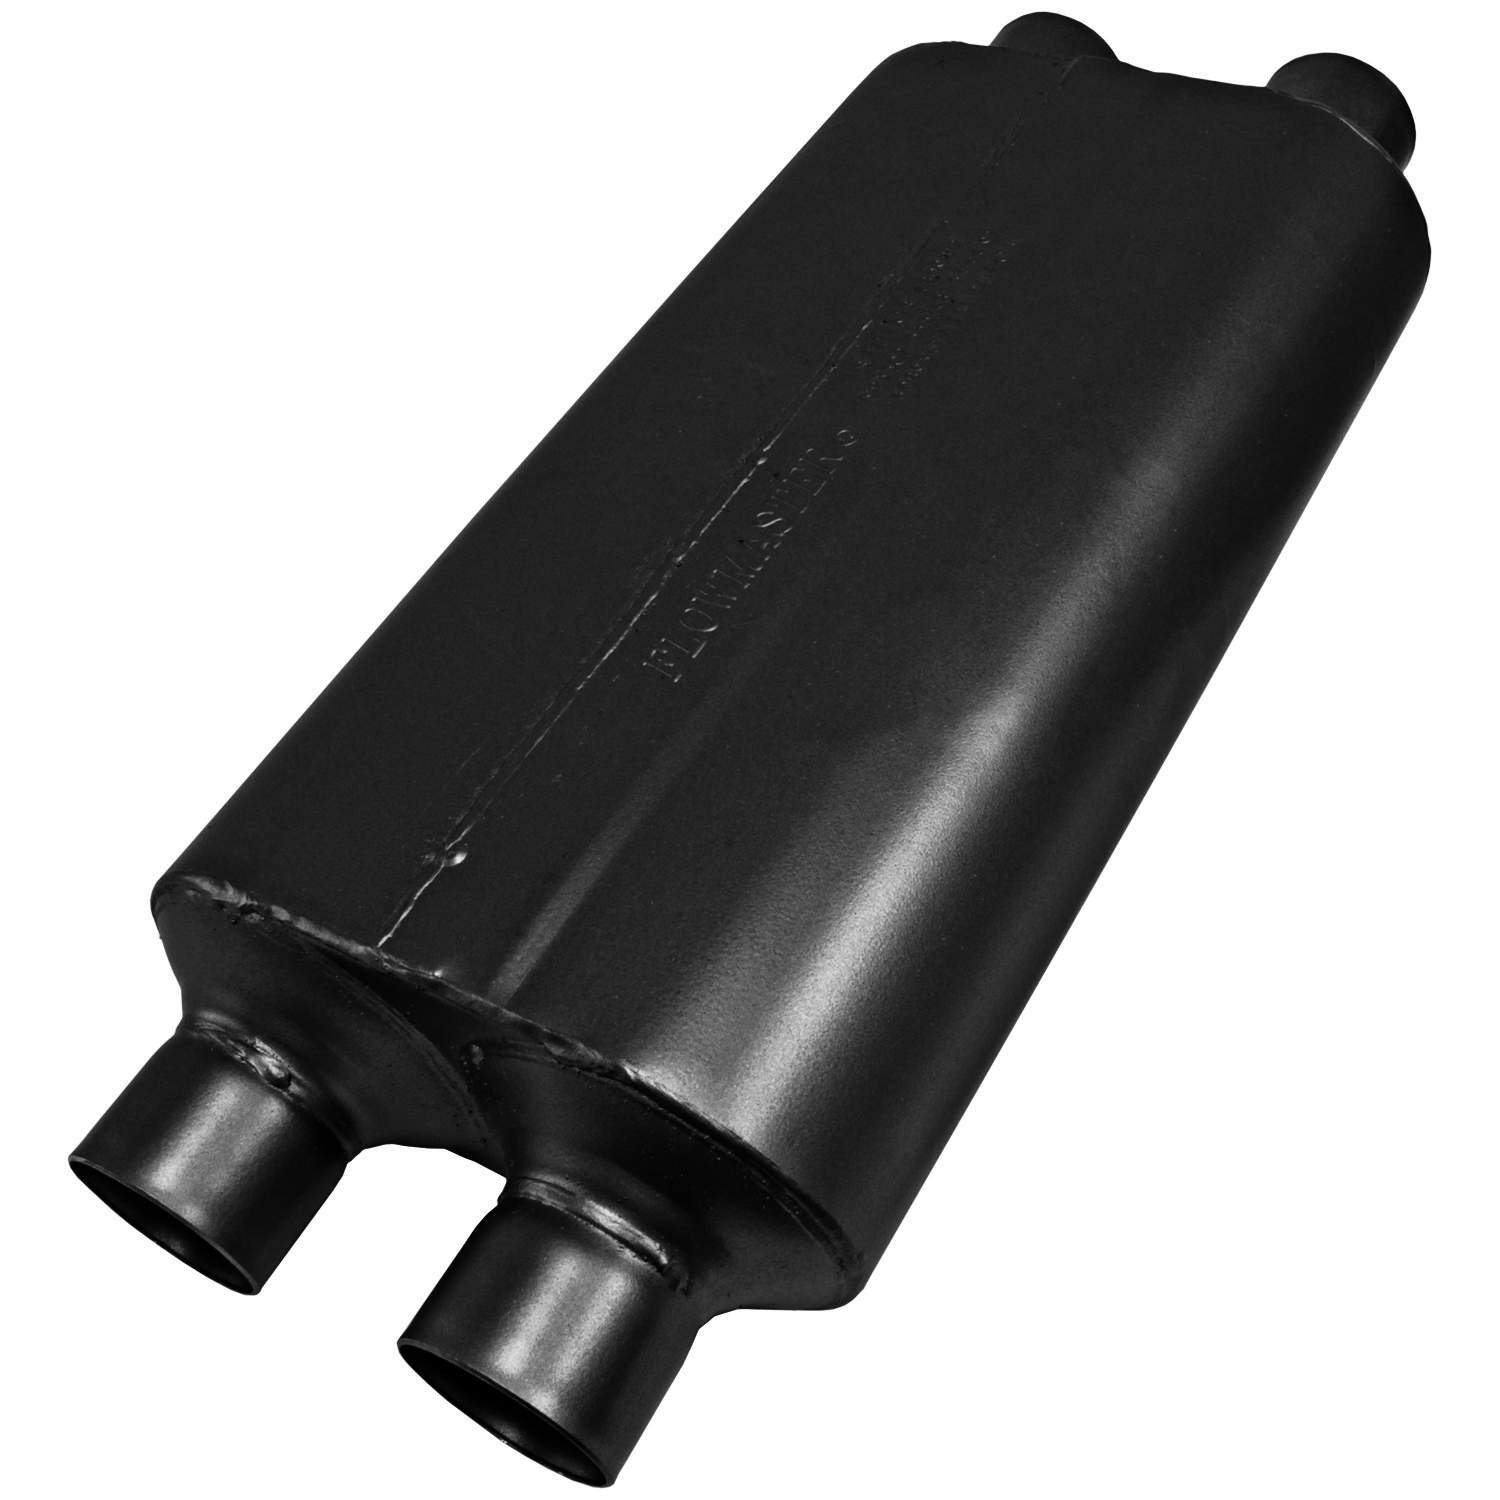 Muffler 409S 2.50 Dual IN // 2.50 Dual OUT Flowmaster 8525554 50 H.D Moderate Sound